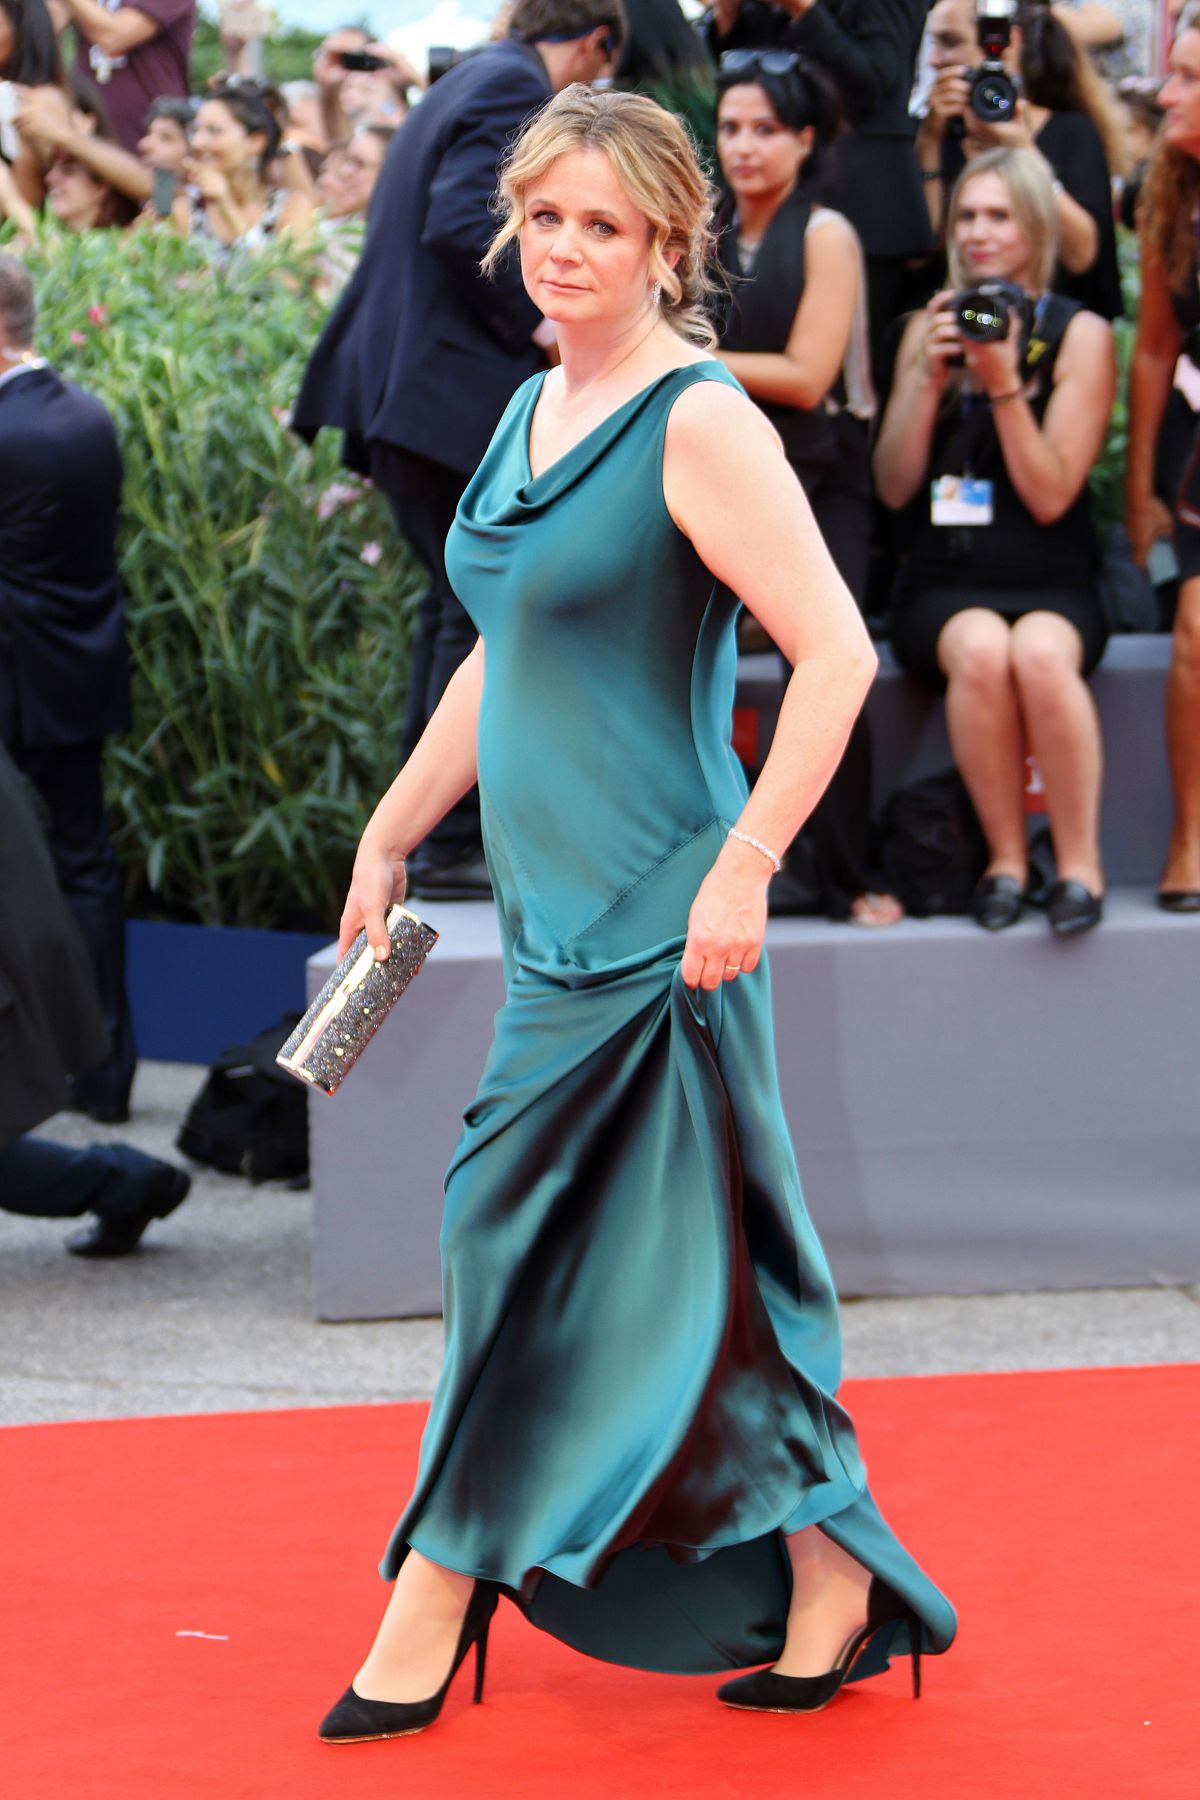 http://www.hawtcelebs.com/wp-content/uploads/2015/09/emily-watson-at-everest-premiere-and-72nd-venice-film-festival-opening-ceremony_4.jpg